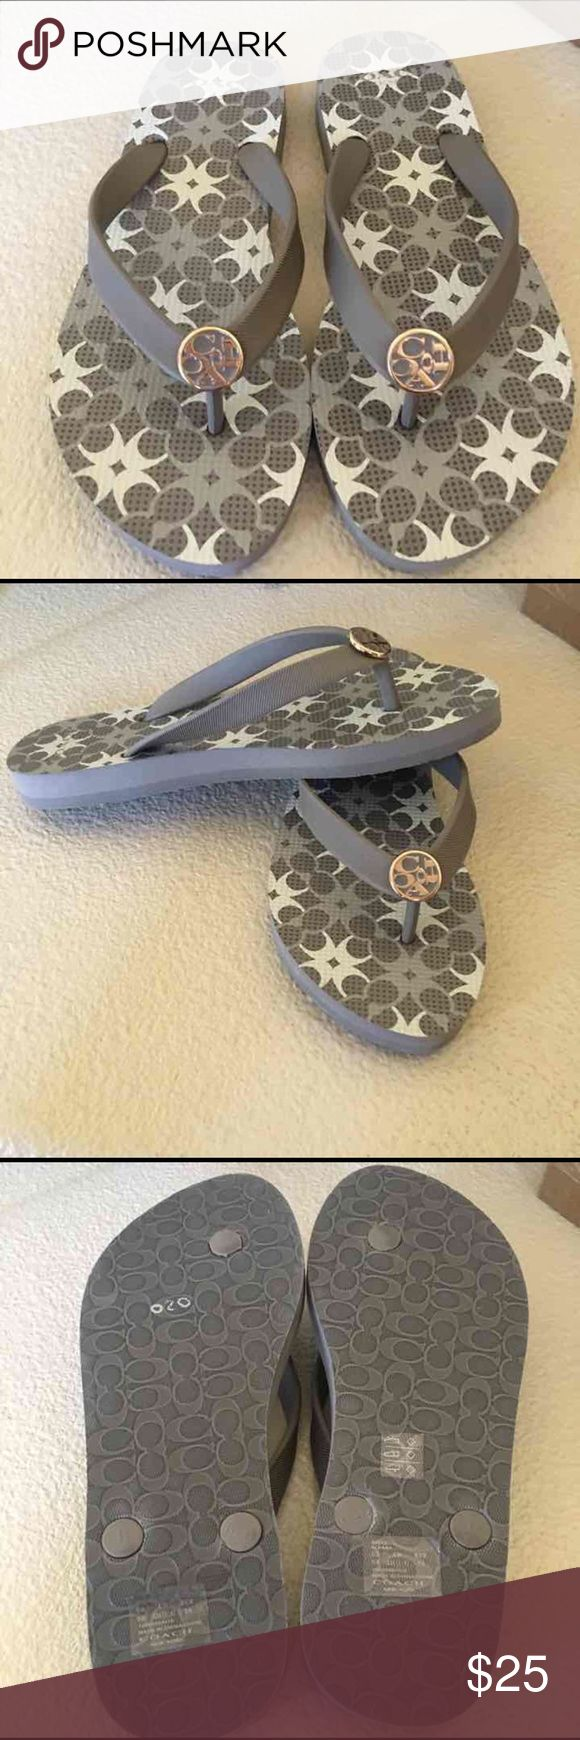 NWOT Coach Sandals Cute Gray/Cream flip flops perfect for summer. Box not included. Coach Shoes Sandals